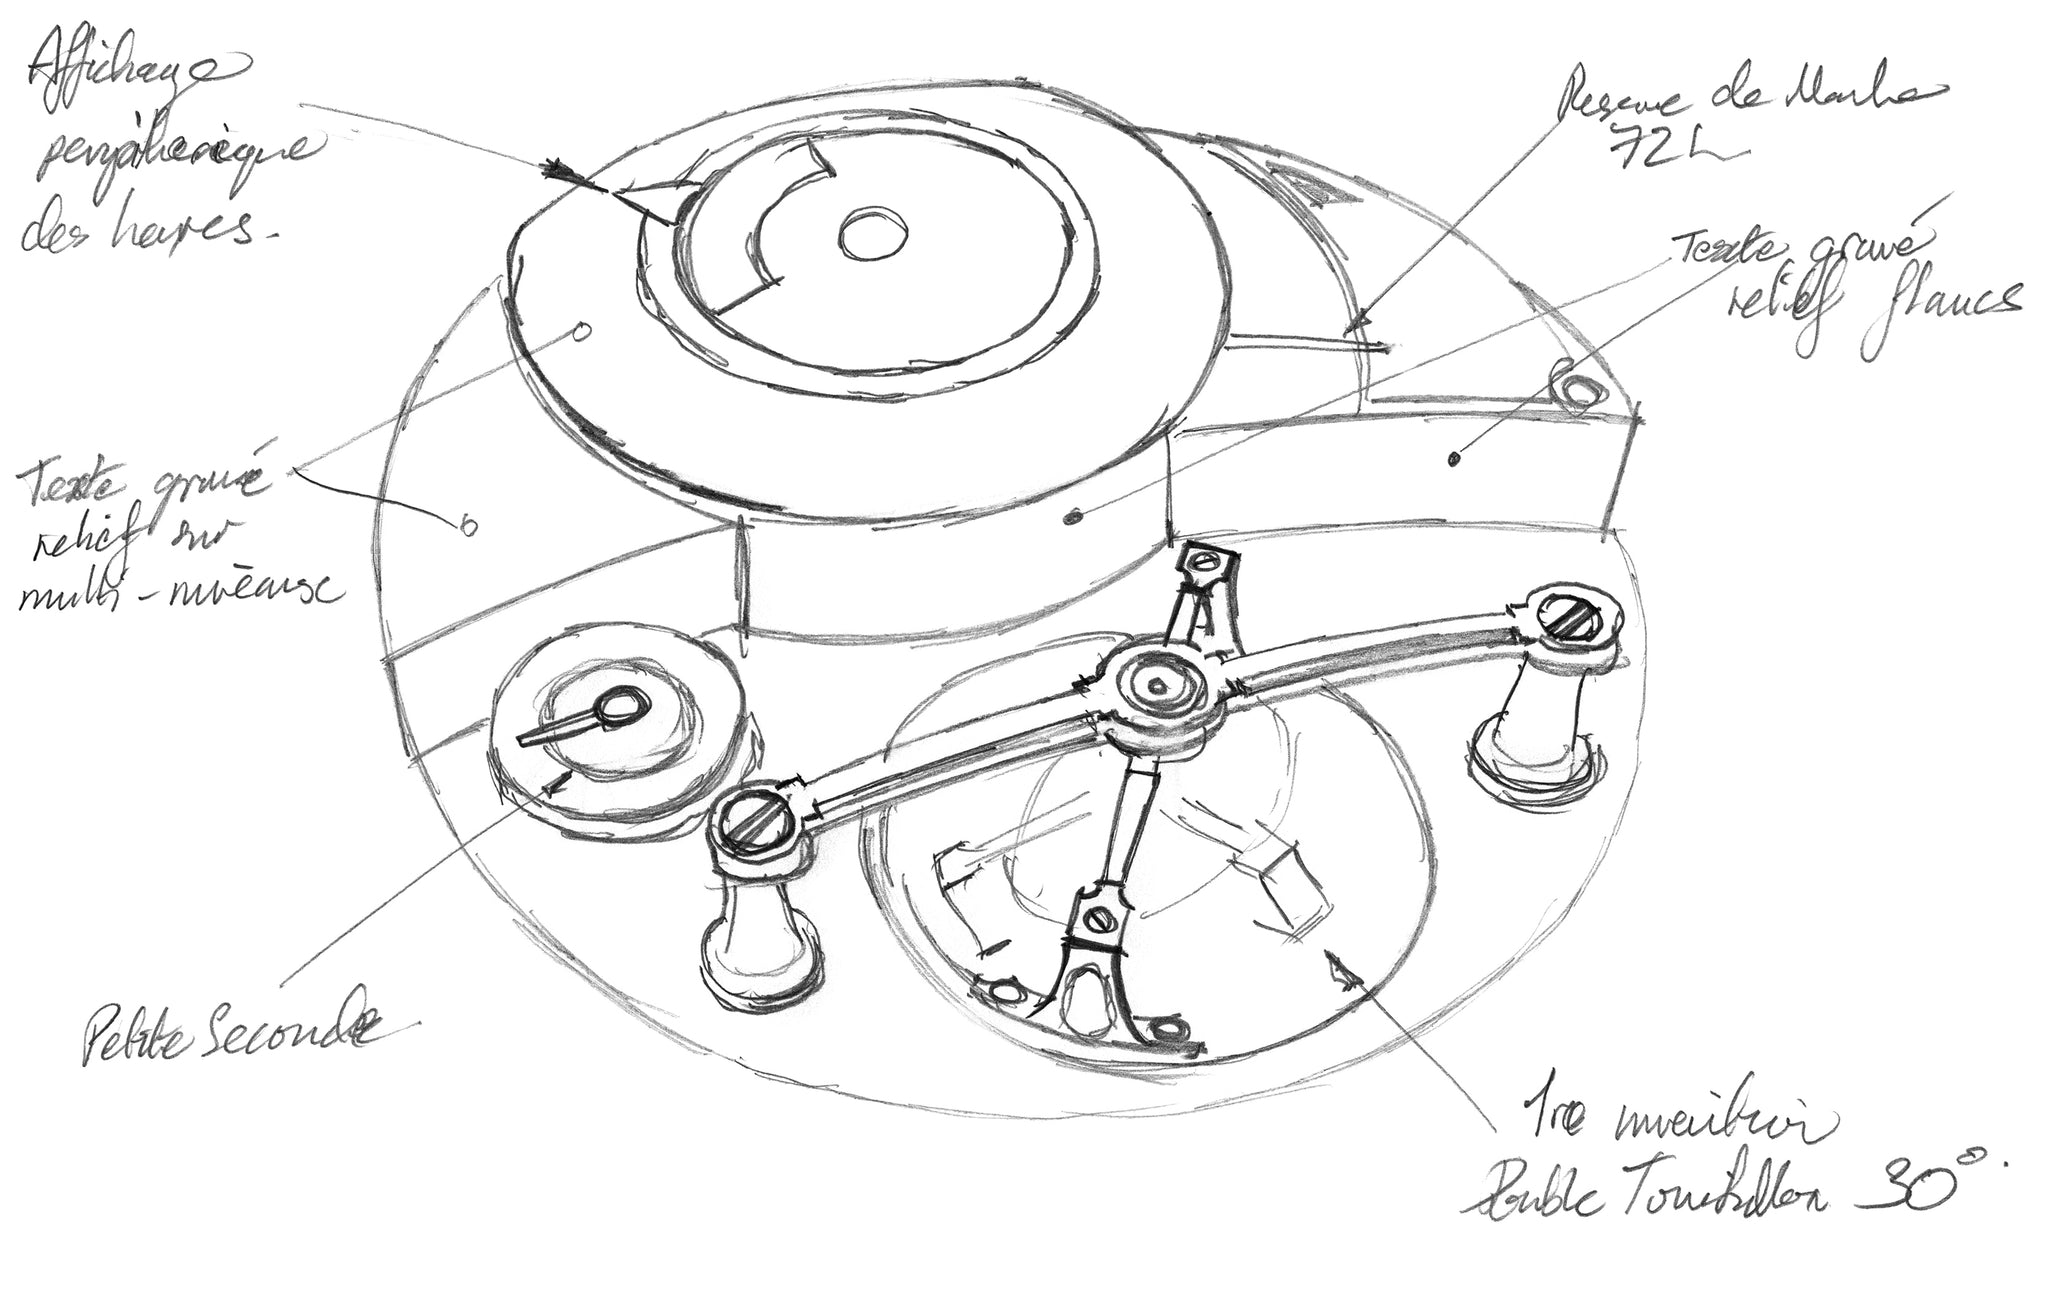 Greubel Forsey sketch of their Art Piece Edition Historique